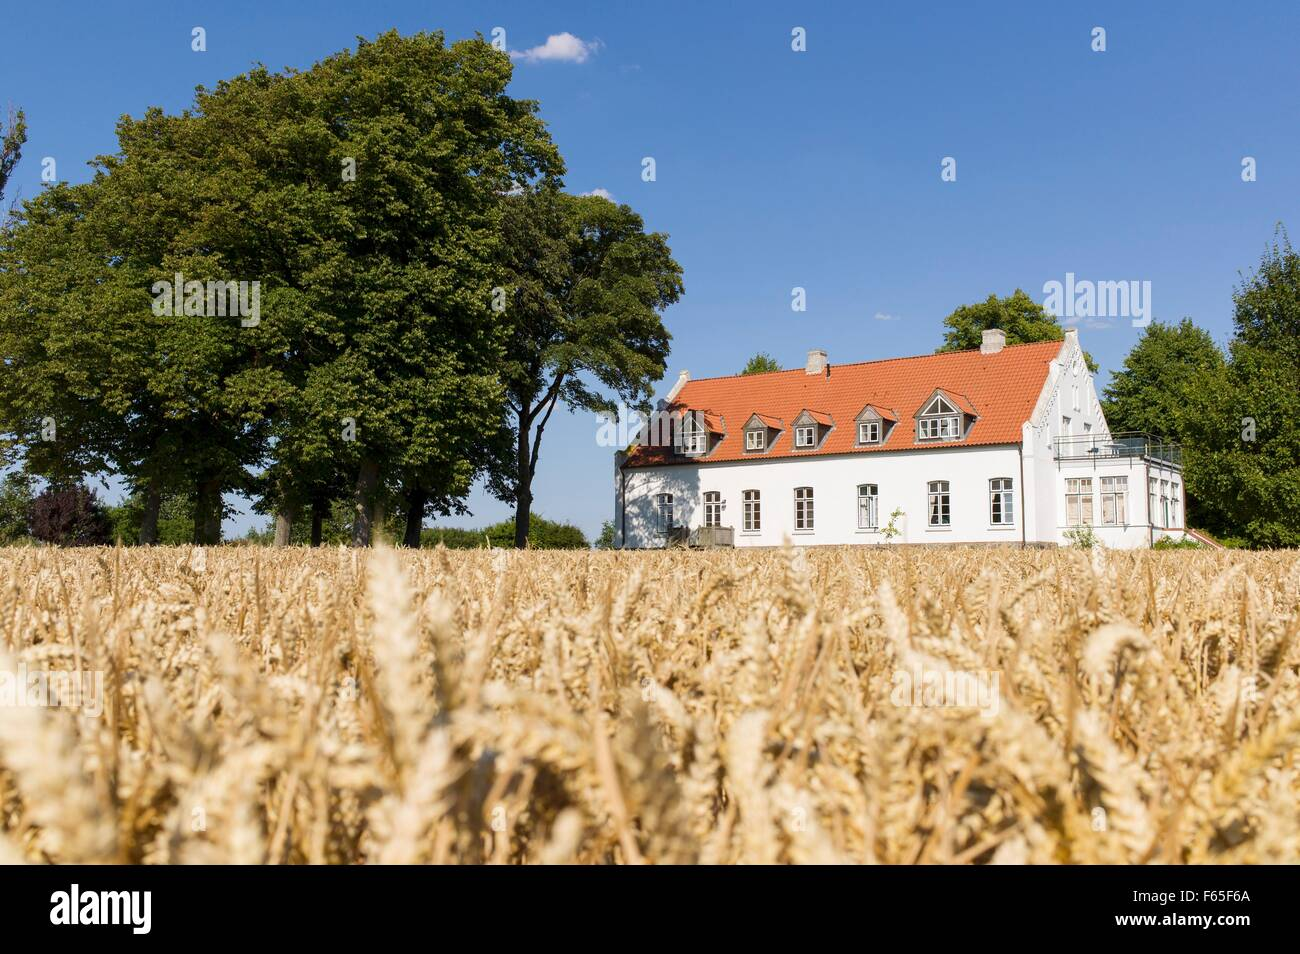 The manor house on the island of Poel, Wismar Bay in the Baltic Sea - Stock Image